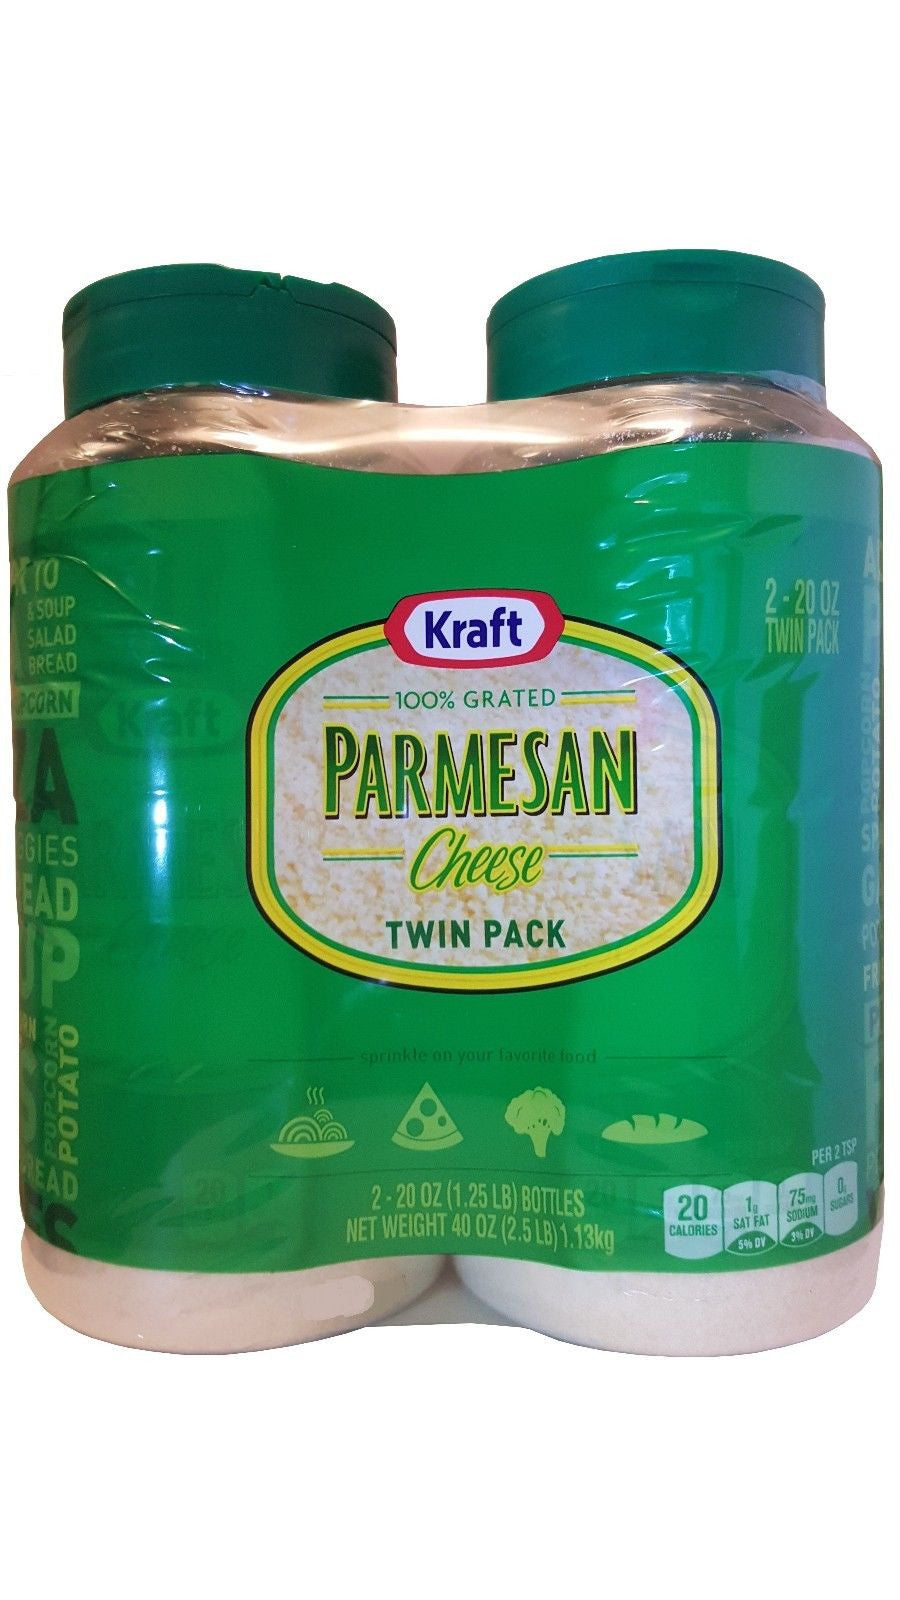 Kraft 100% Grated Parmesan Cheese Large Twin Pack 2.5 lb (40 oz)